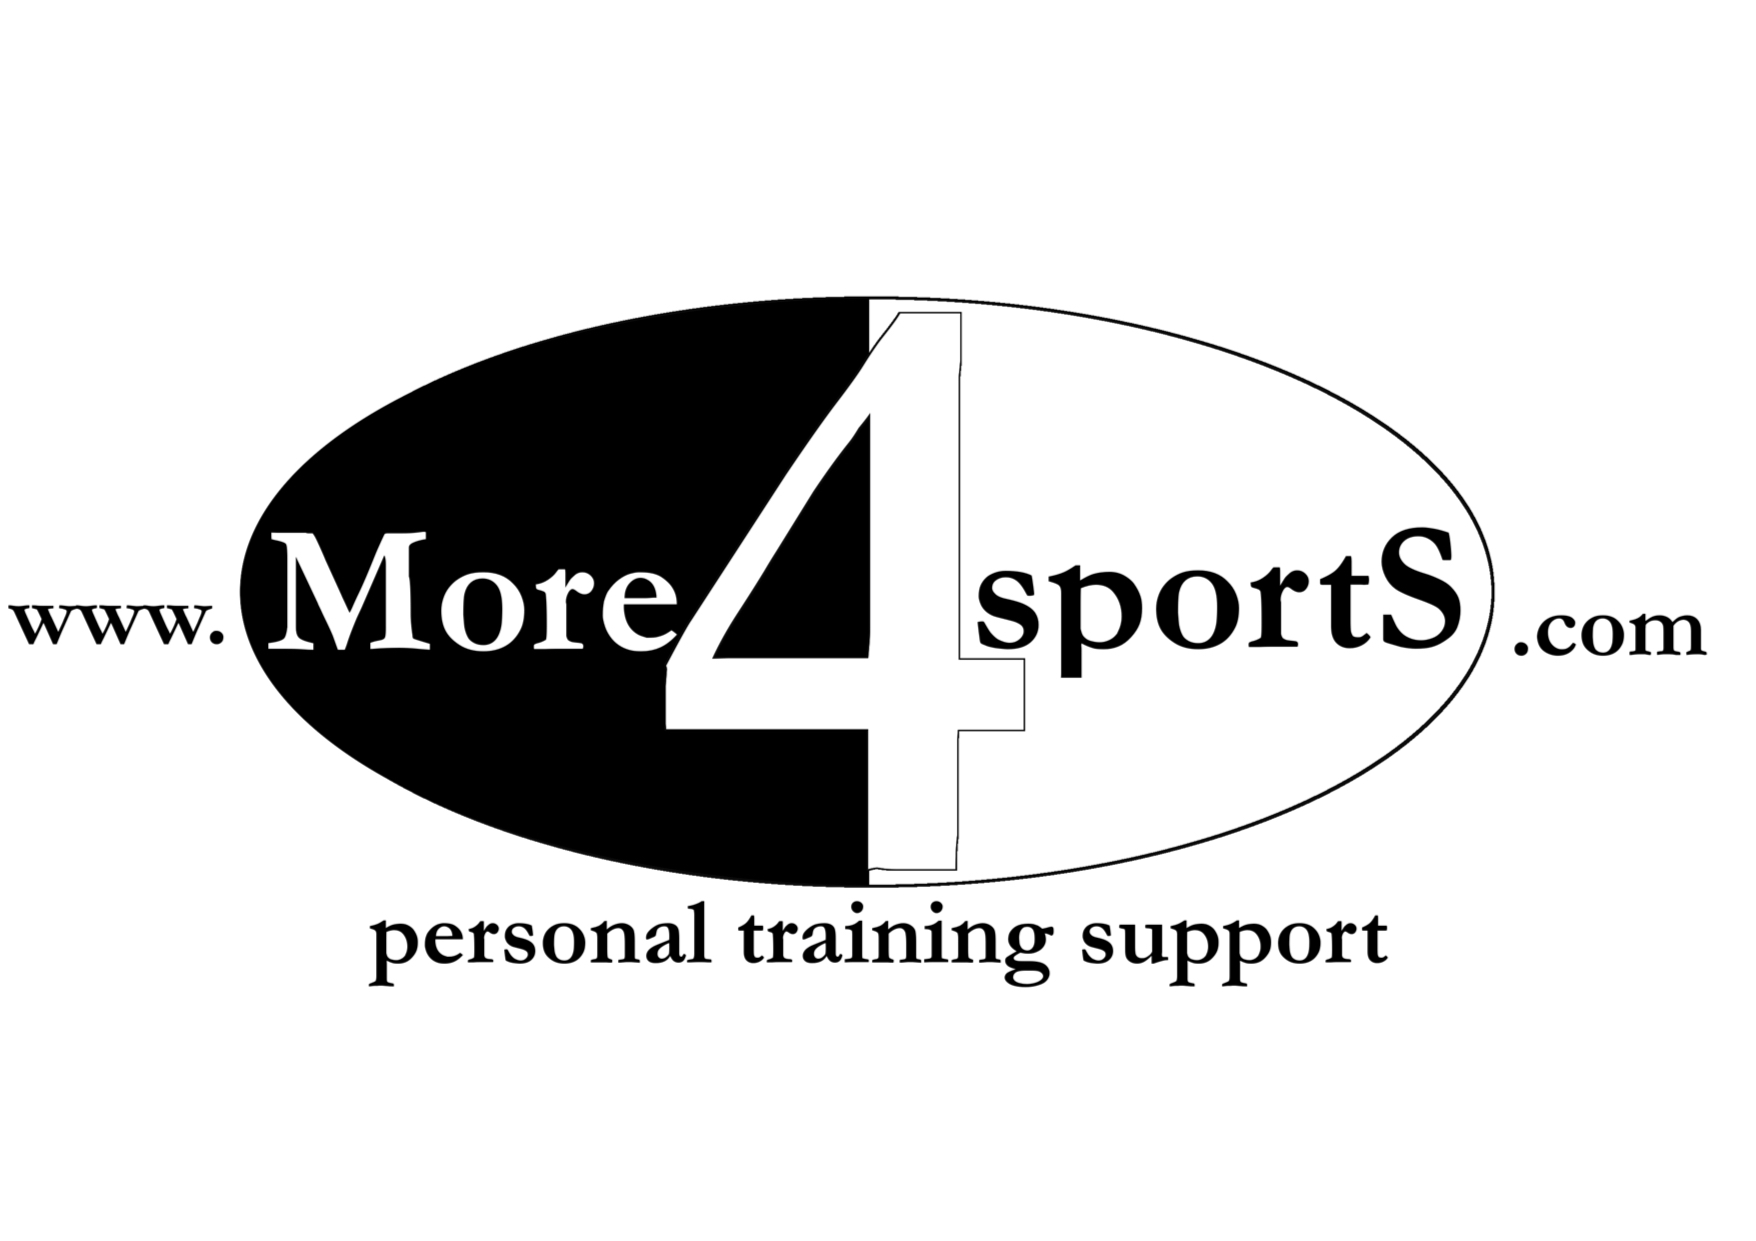 More4sports - Personal Training Support